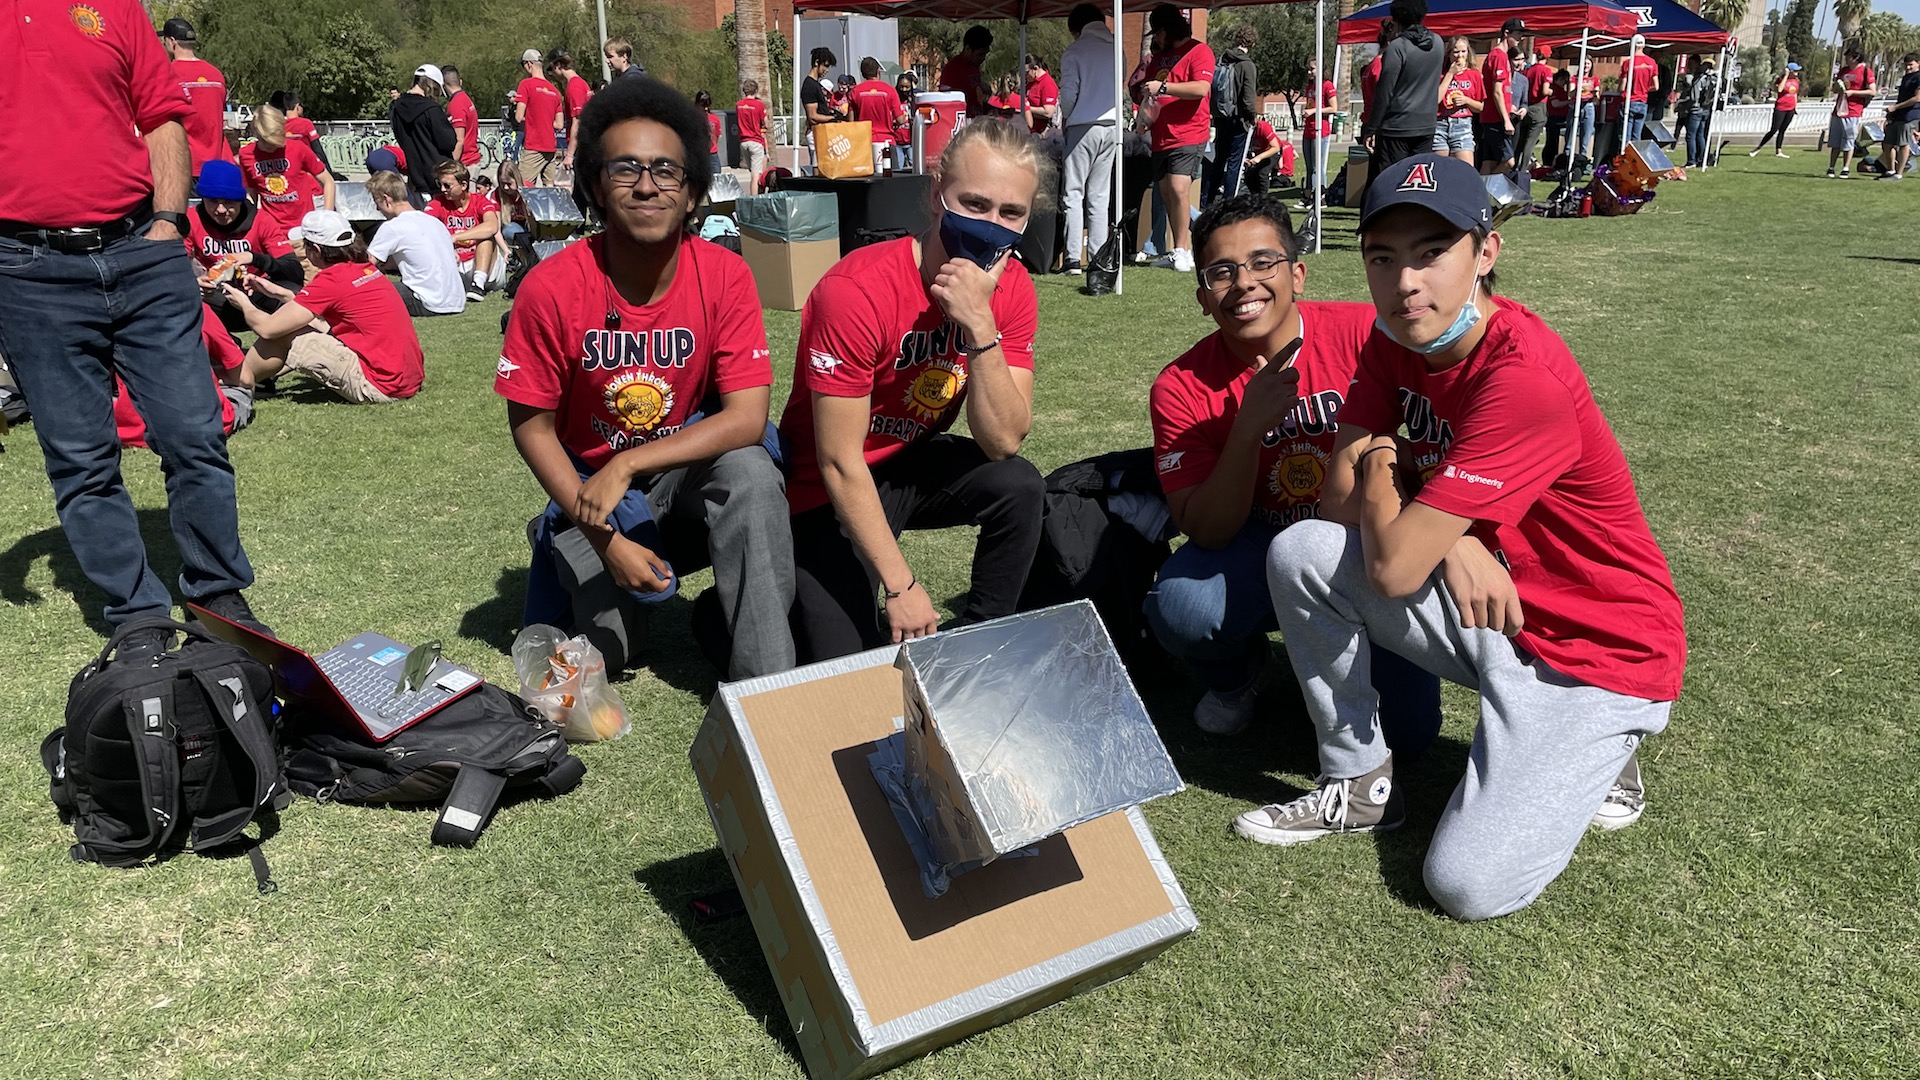 """University of Arizona Engineering students Joseph White, Levi Mccluskey, Osamah Bahamid and Eric Anthony Pineda pose in front of their solar oven on Wednesday, October 13th, 2021, as part of the school's annual """"Solar Oven Throwdown"""" event."""